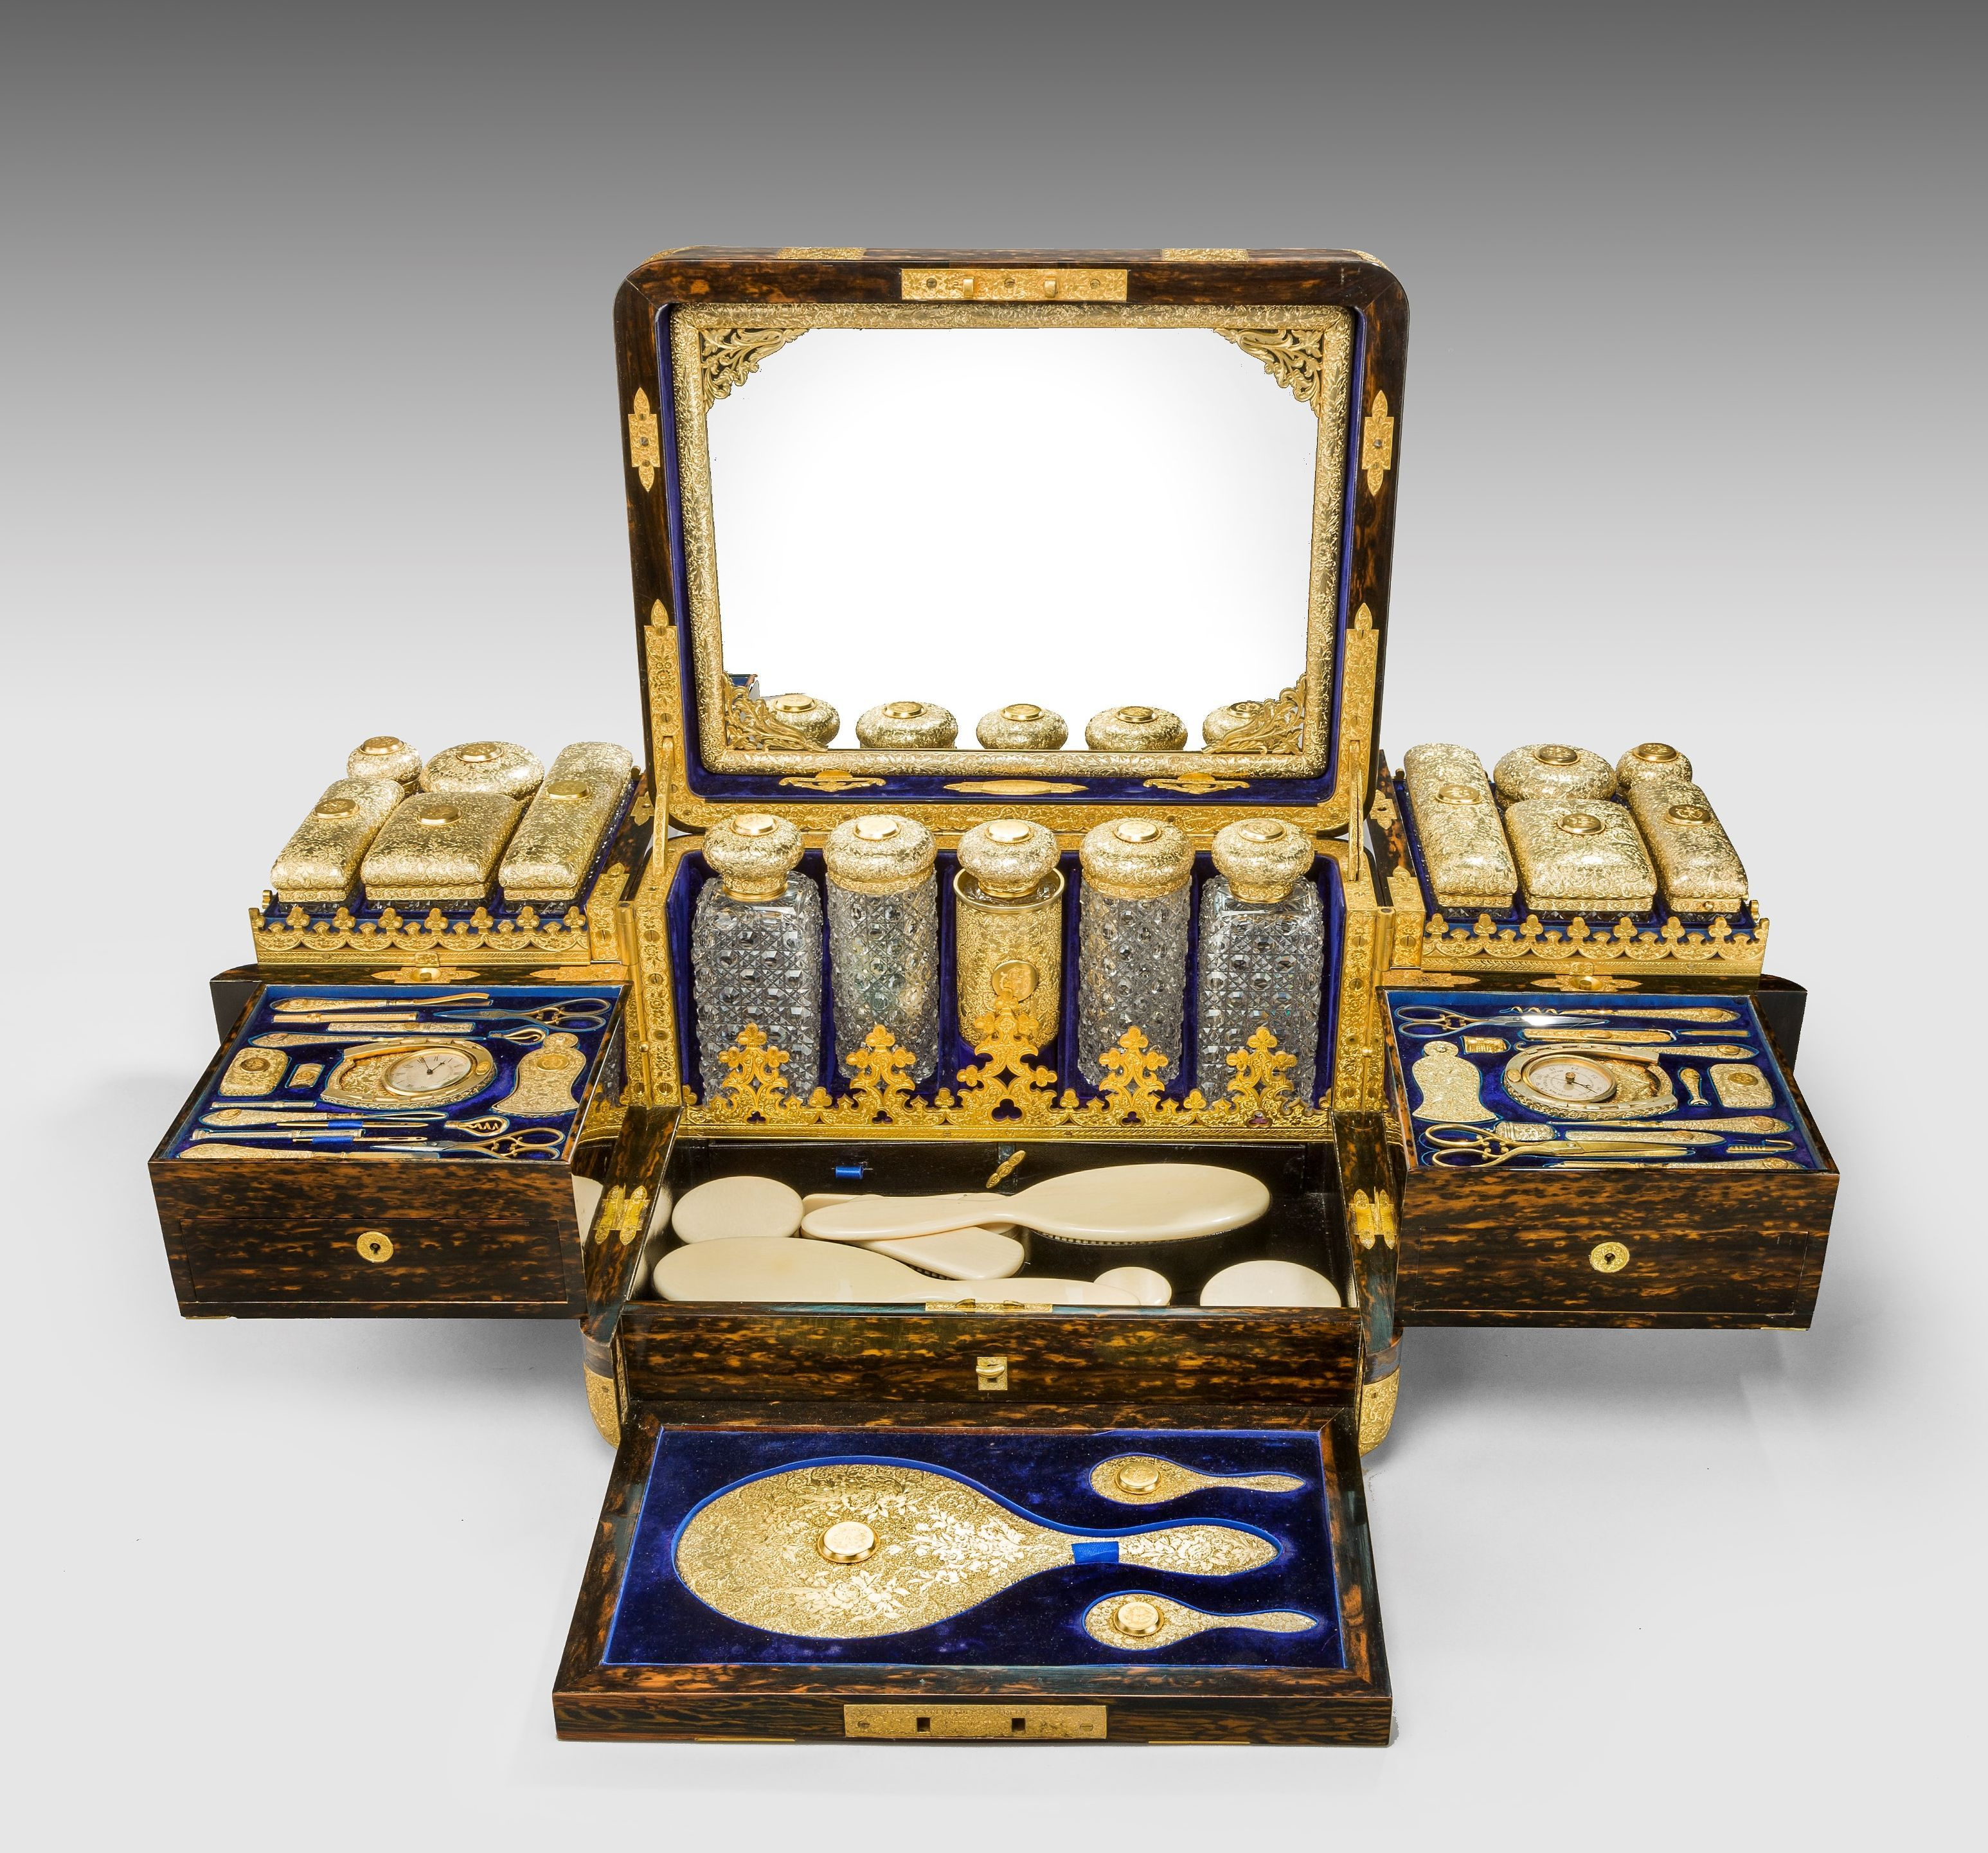 d93970eb6 A TRULY OUTSTANDING JENNER AND KNEWSTUB DRESSING CASE Richard Gardner  Antiques